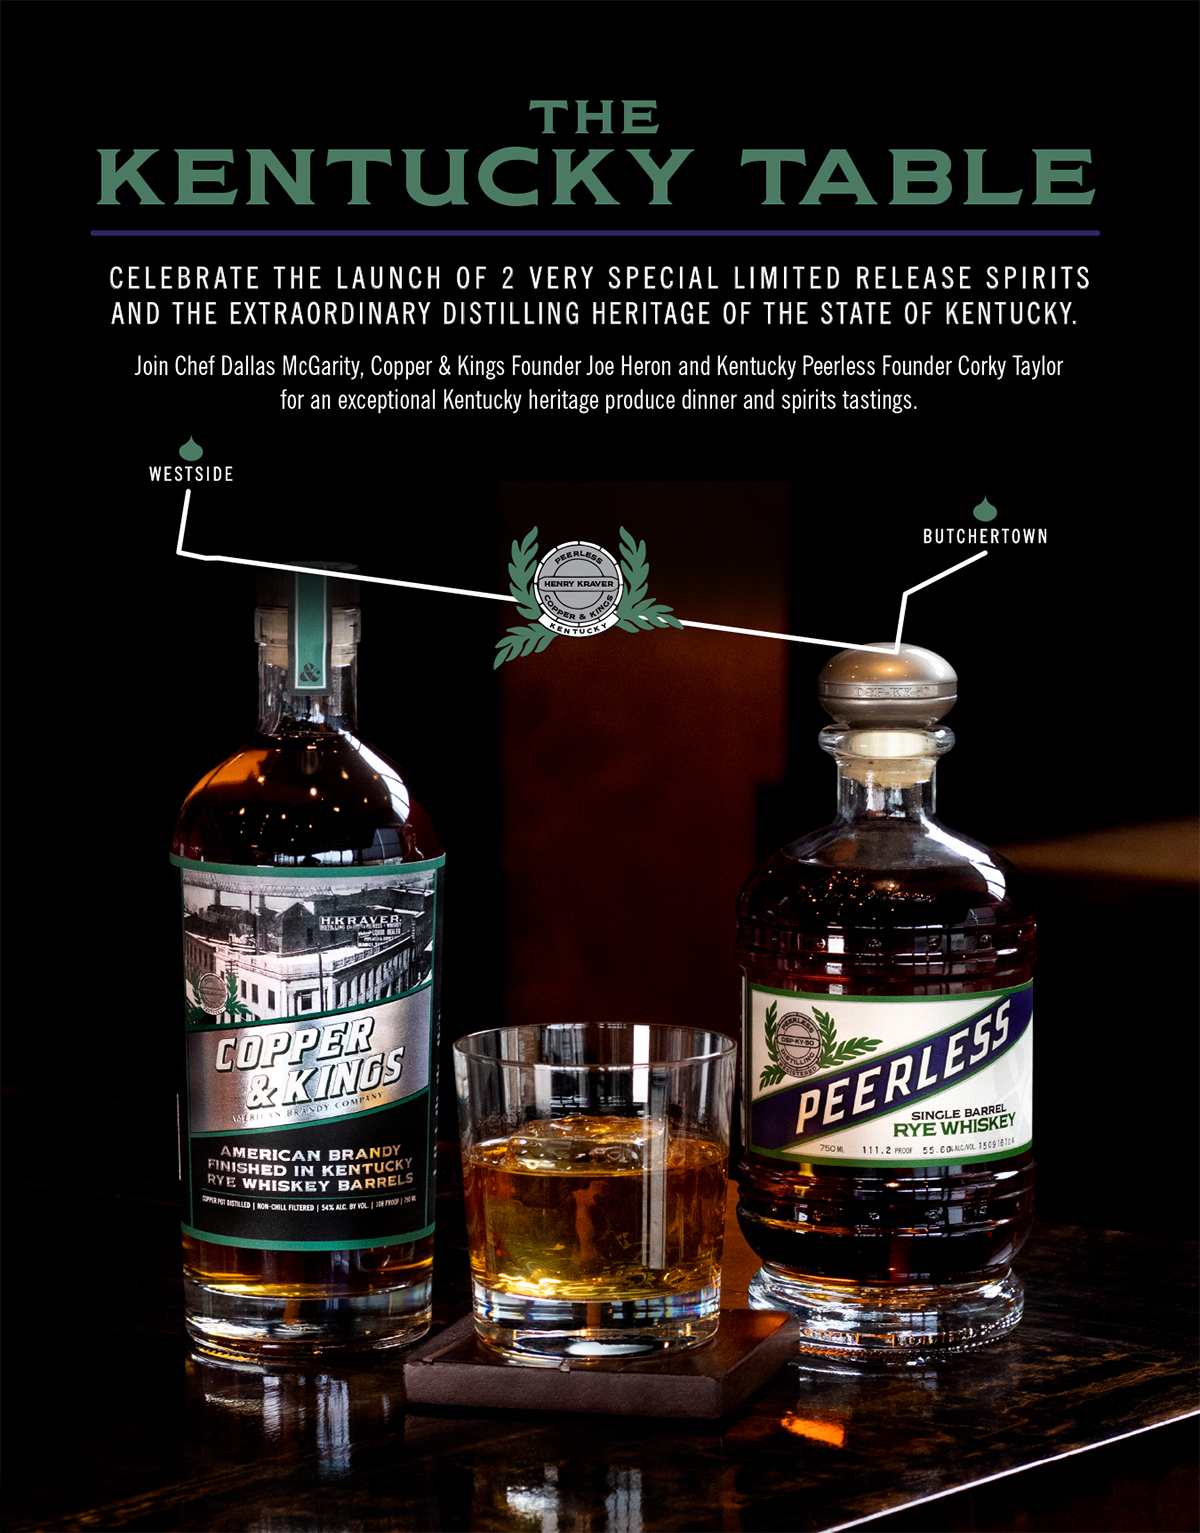 The Kentucky Table